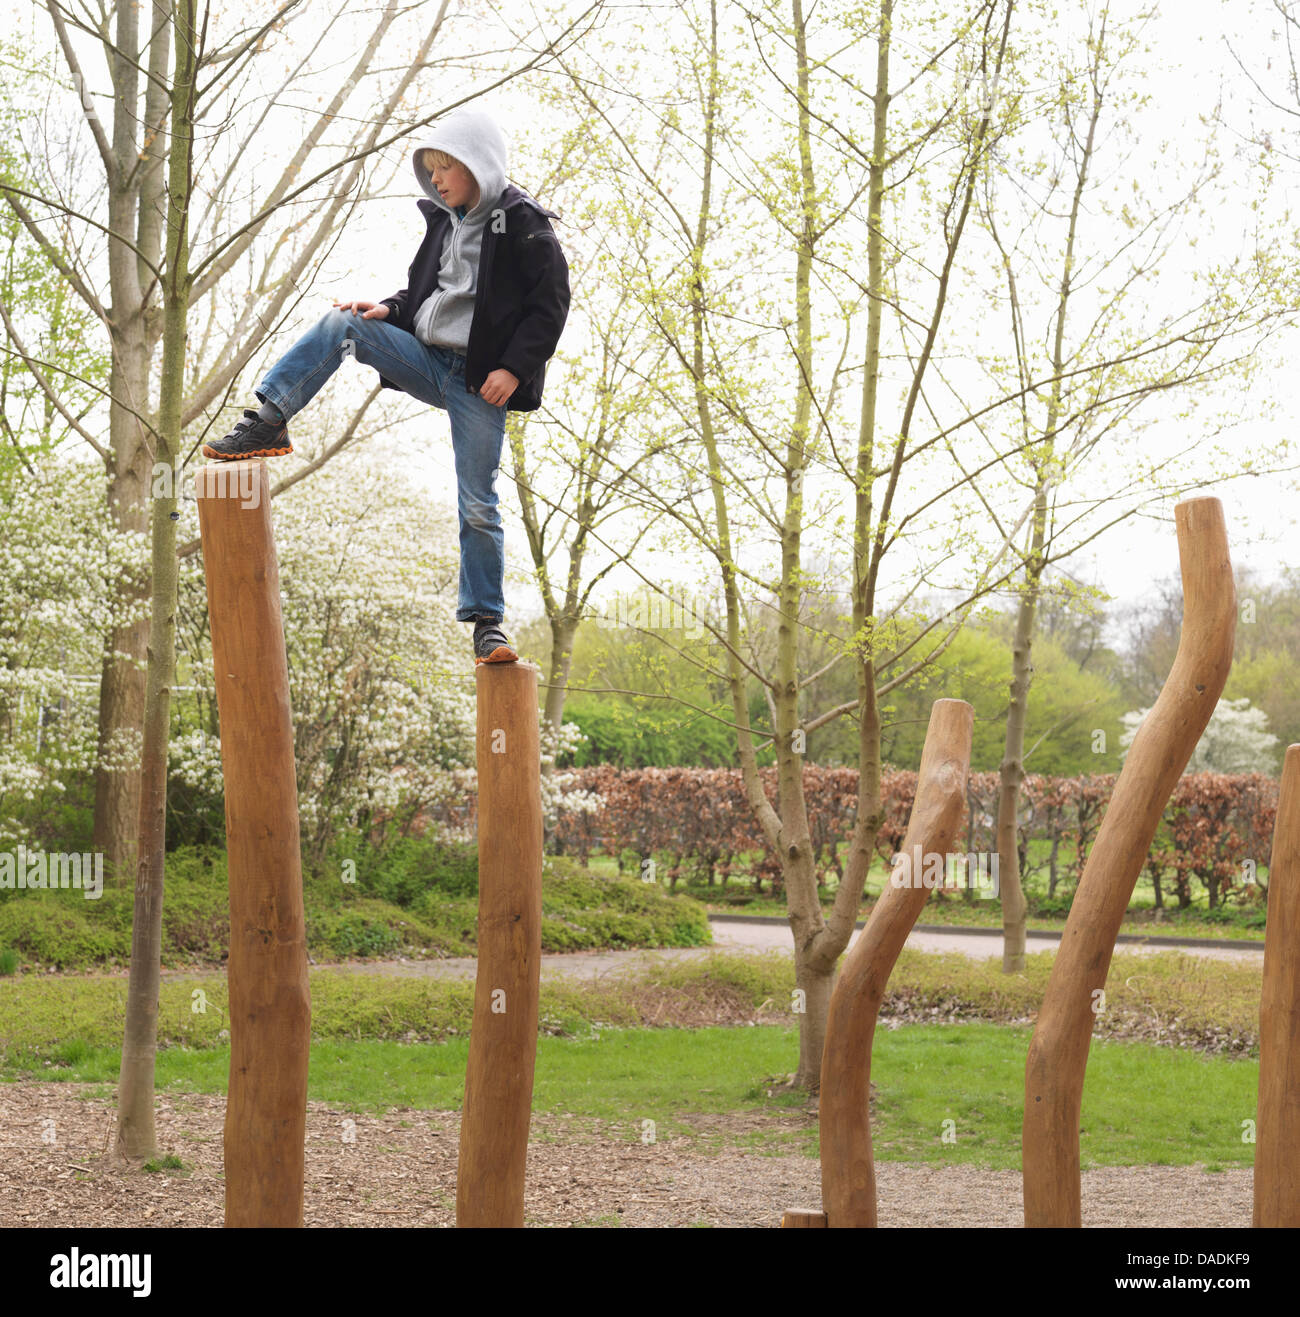 Boy stepping on wooden posts in park - Stock Image